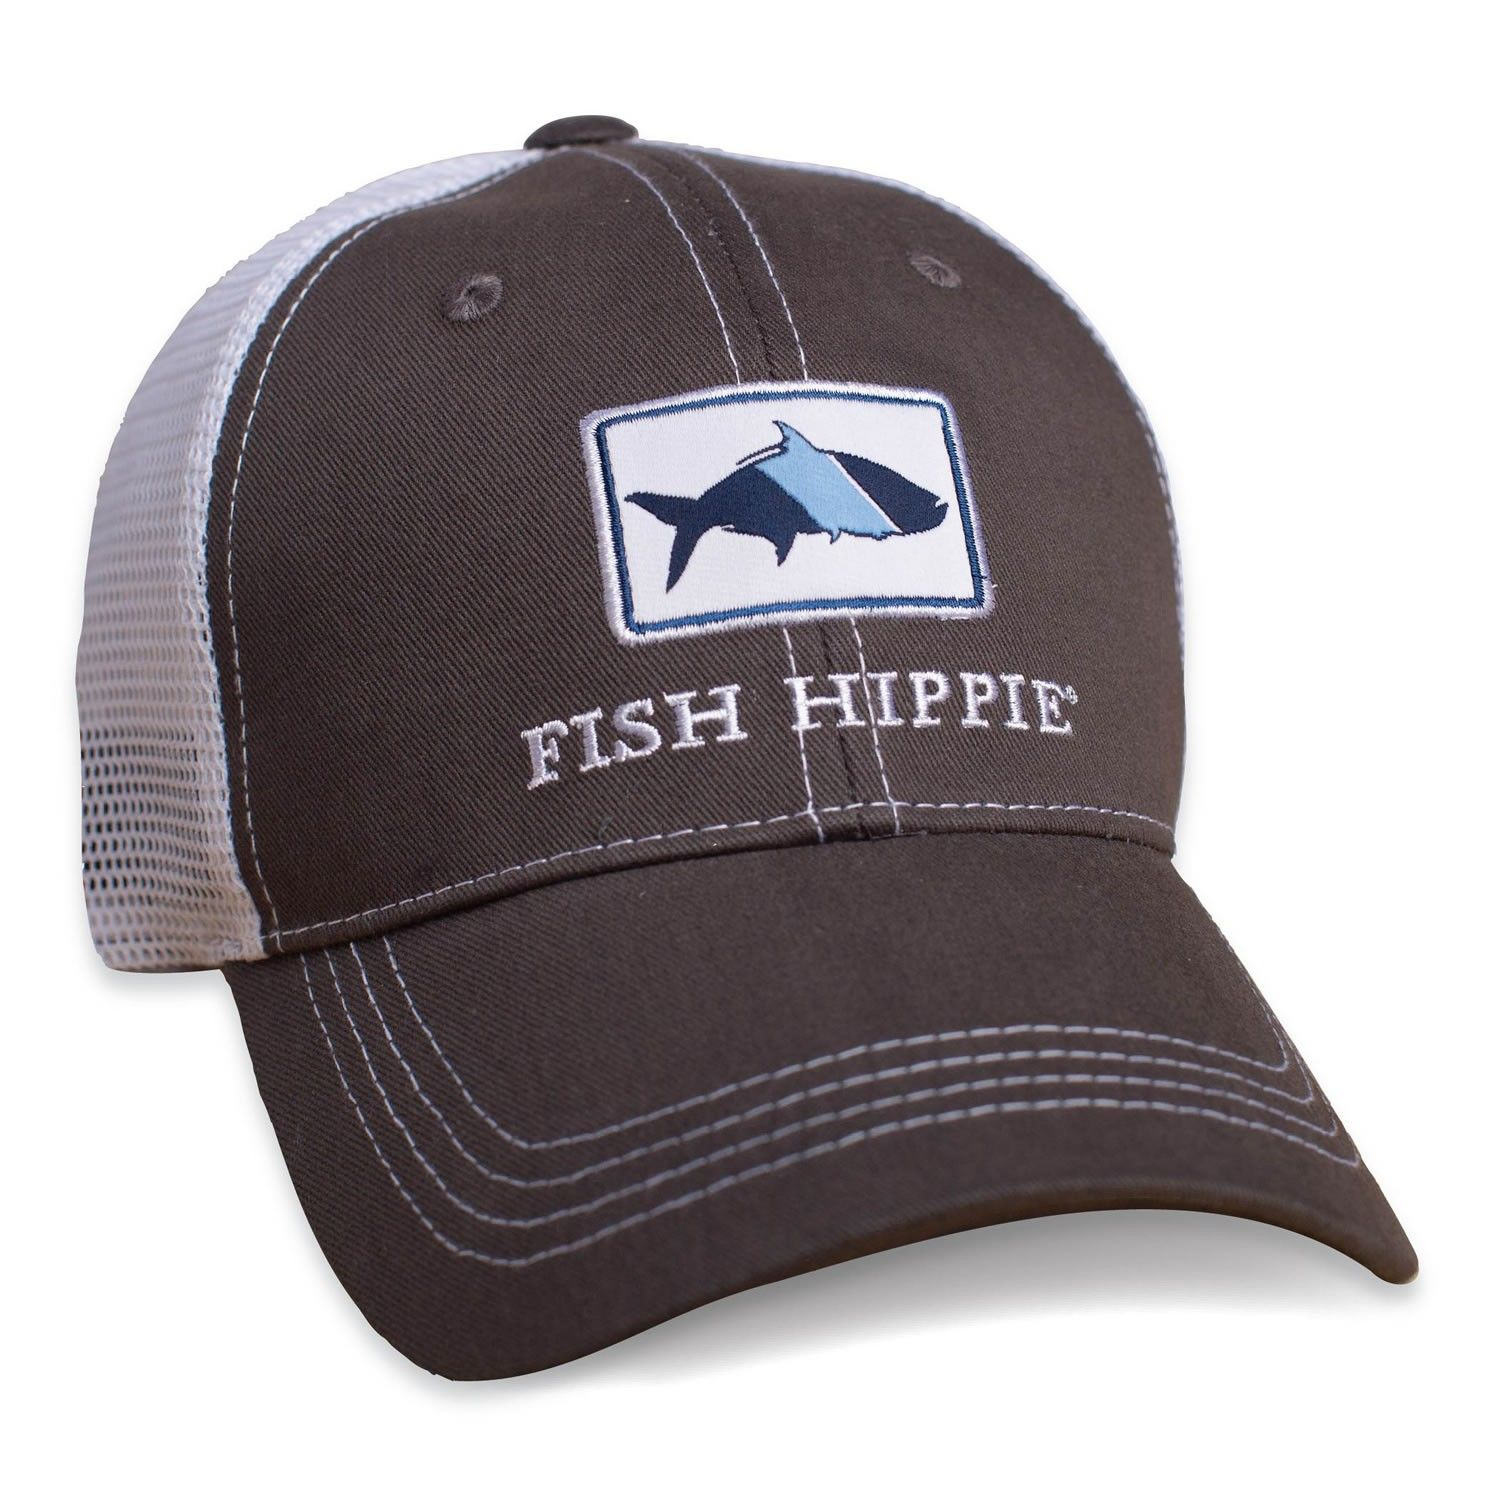 Fish Hippie Trucker Hat  2aa57f2ba8f